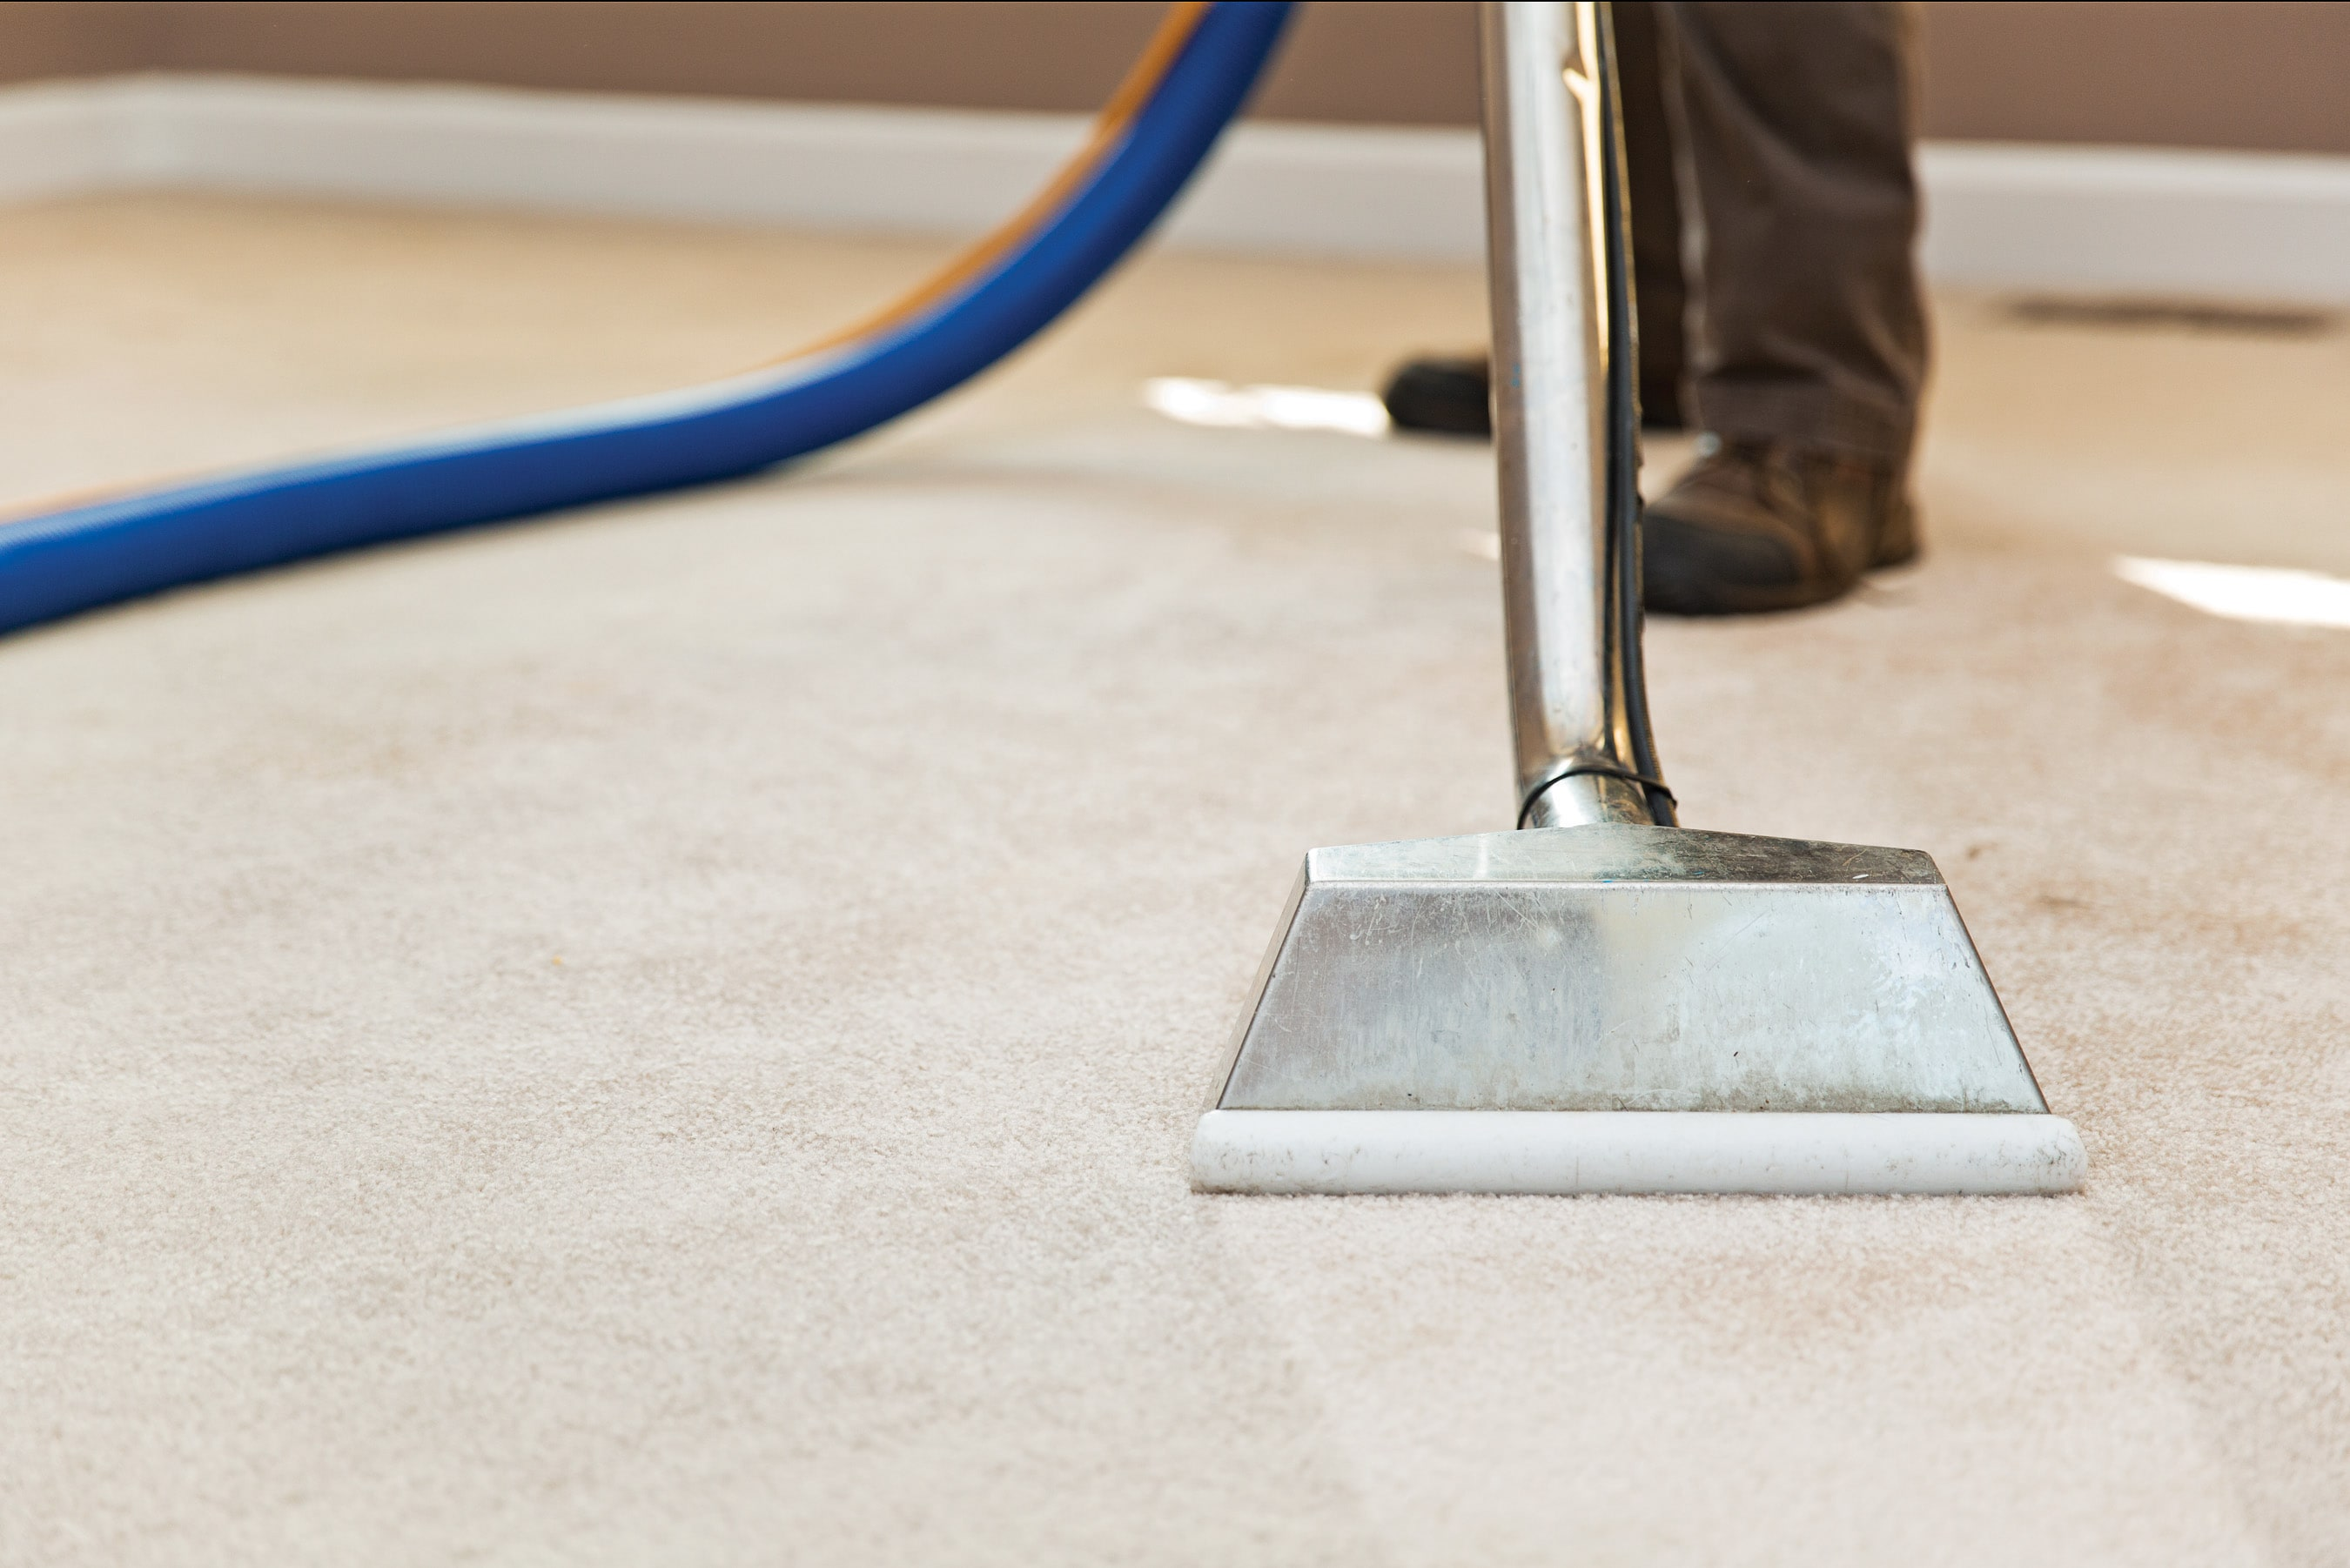 Hot Water Extraction vs Bonnet Carpet Cleaning